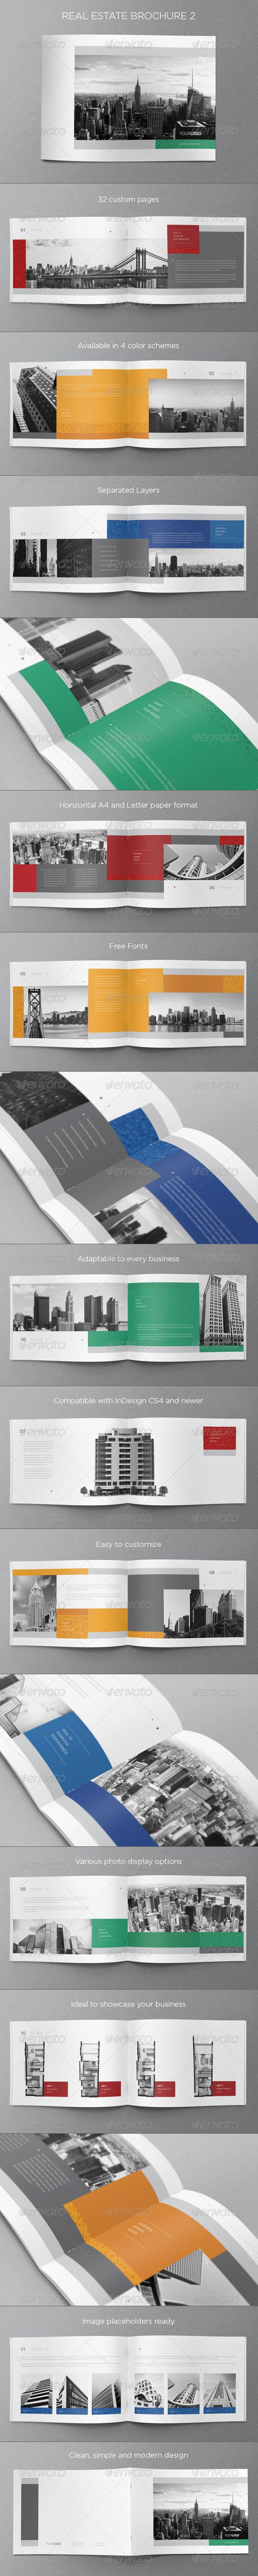 Real Estate Brochure 2 — Vector EPS #red #architecture • Available here → https://graphicriver.net/item/real-estate-brochure-2/5935898?ref=pxcr